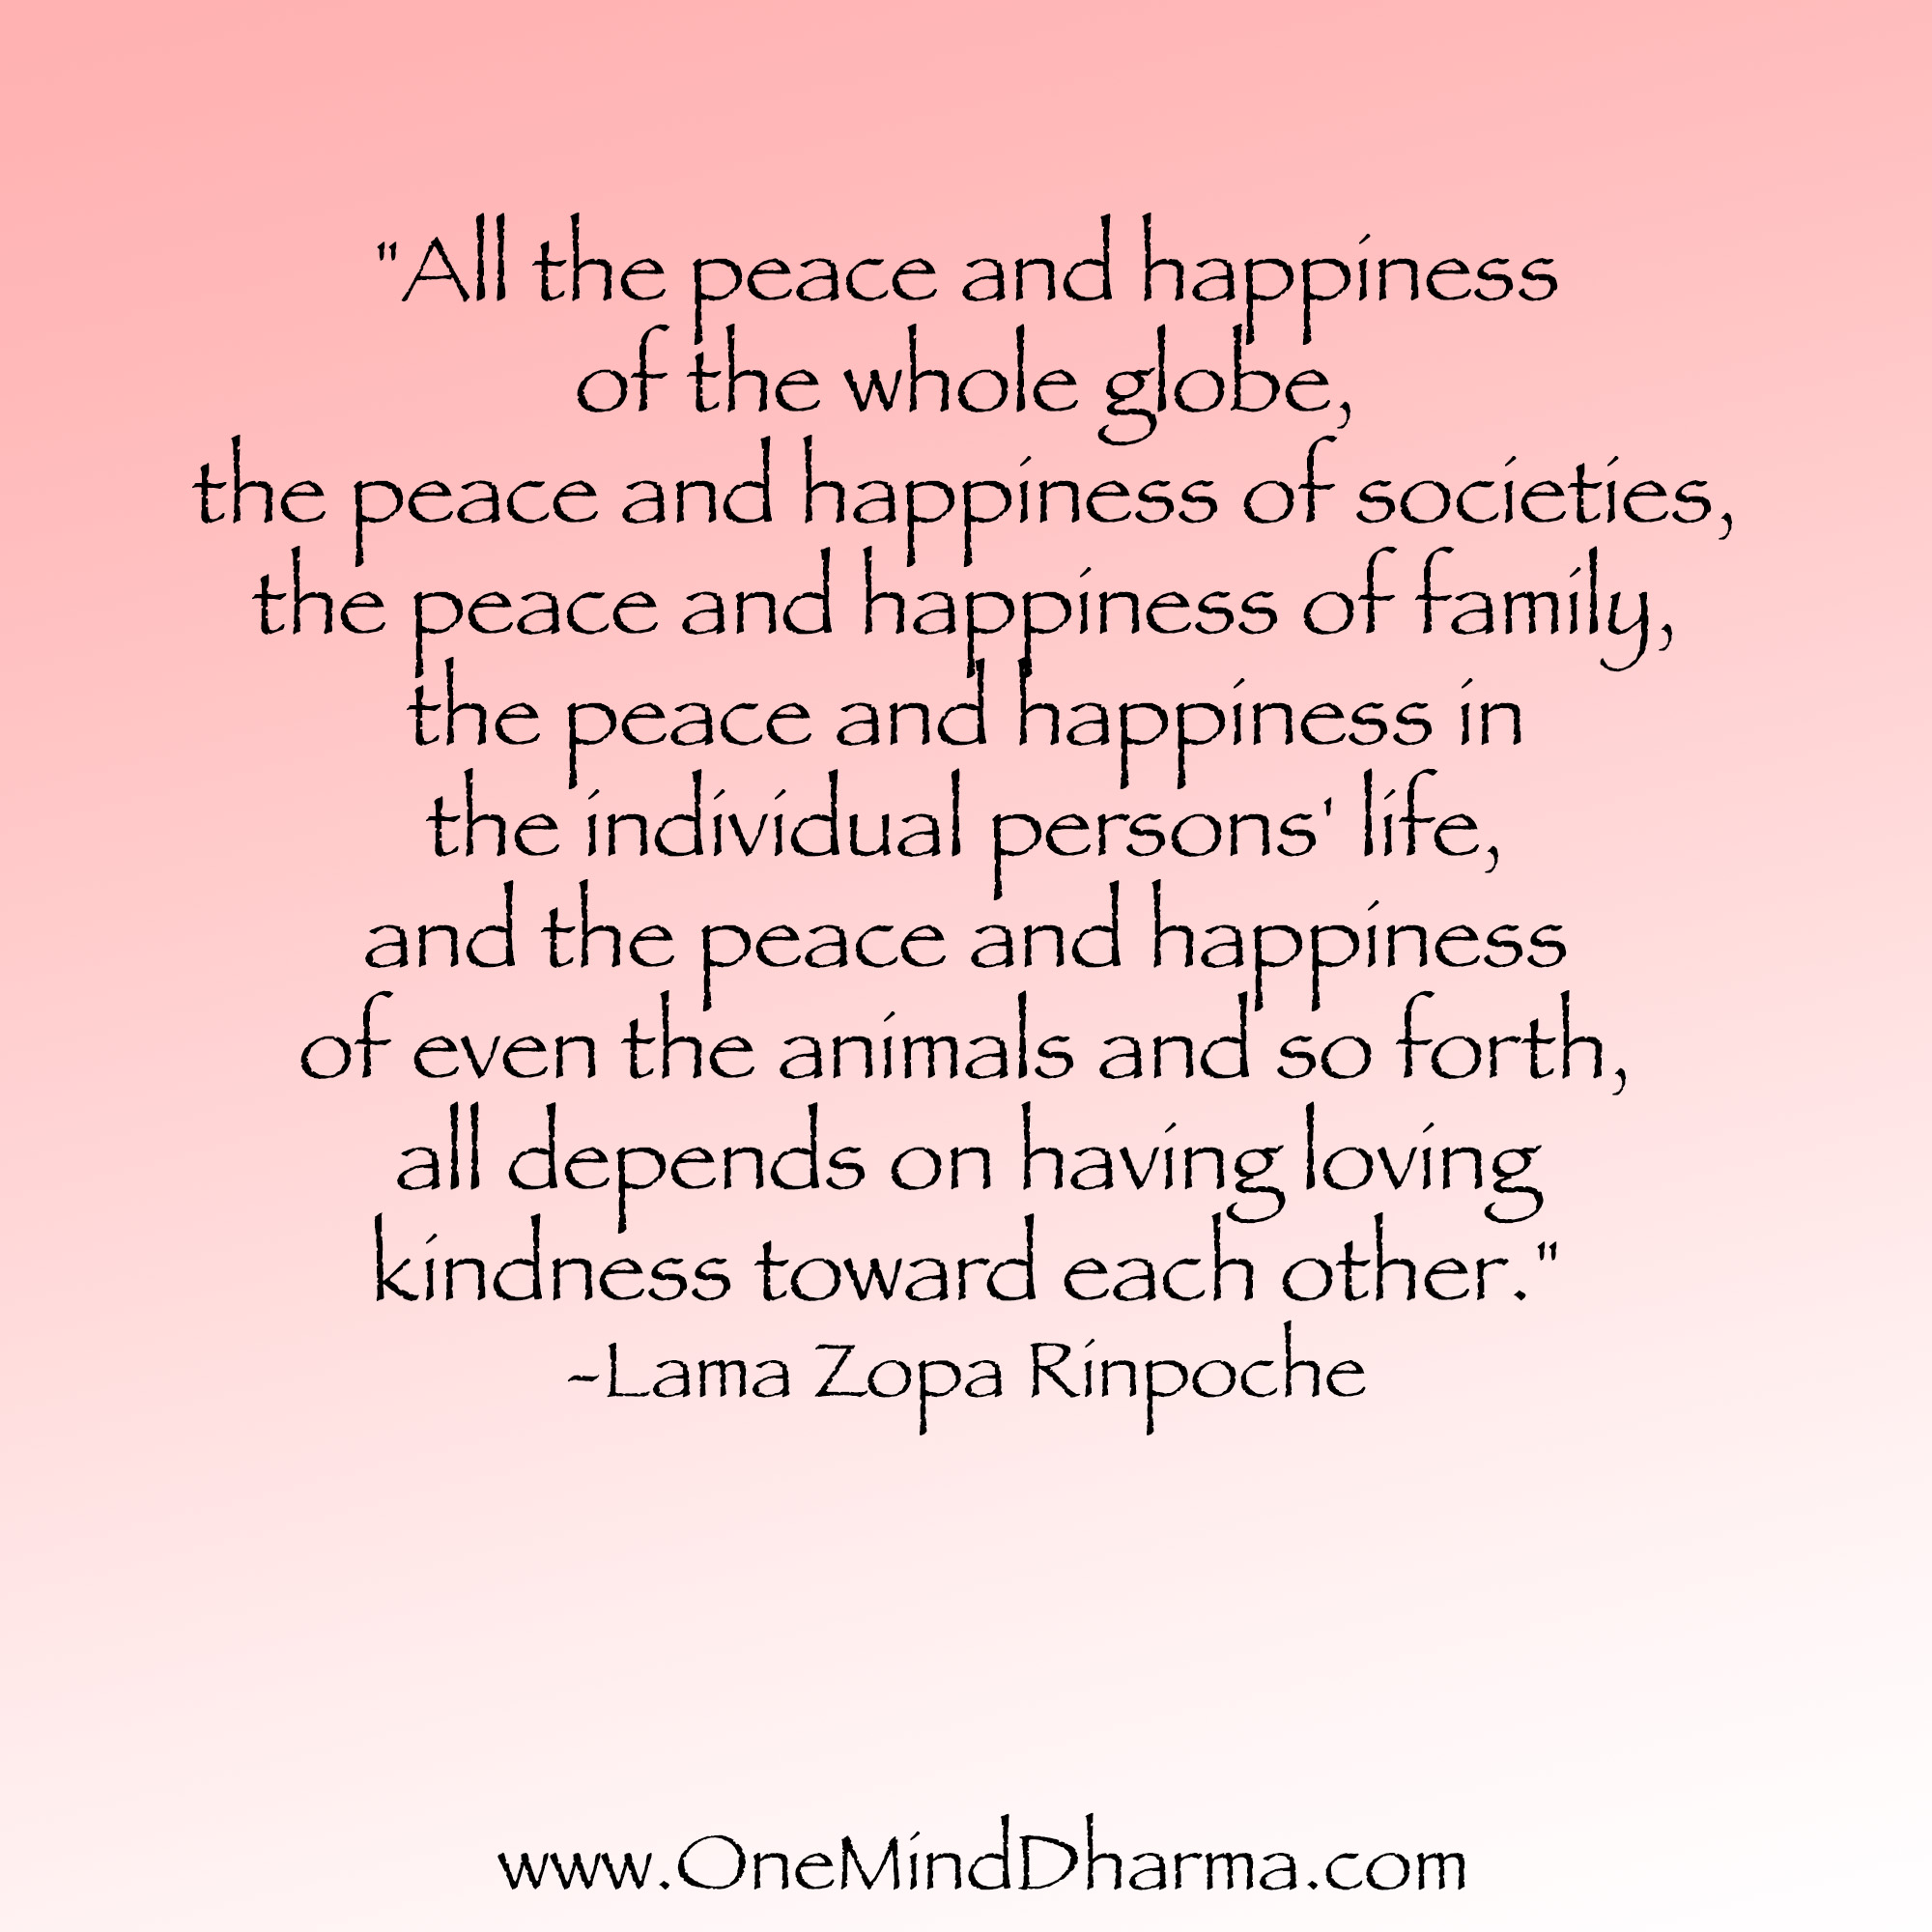 Quotes About Peace And Happiness Compassion Quotes  One Mind Dharma